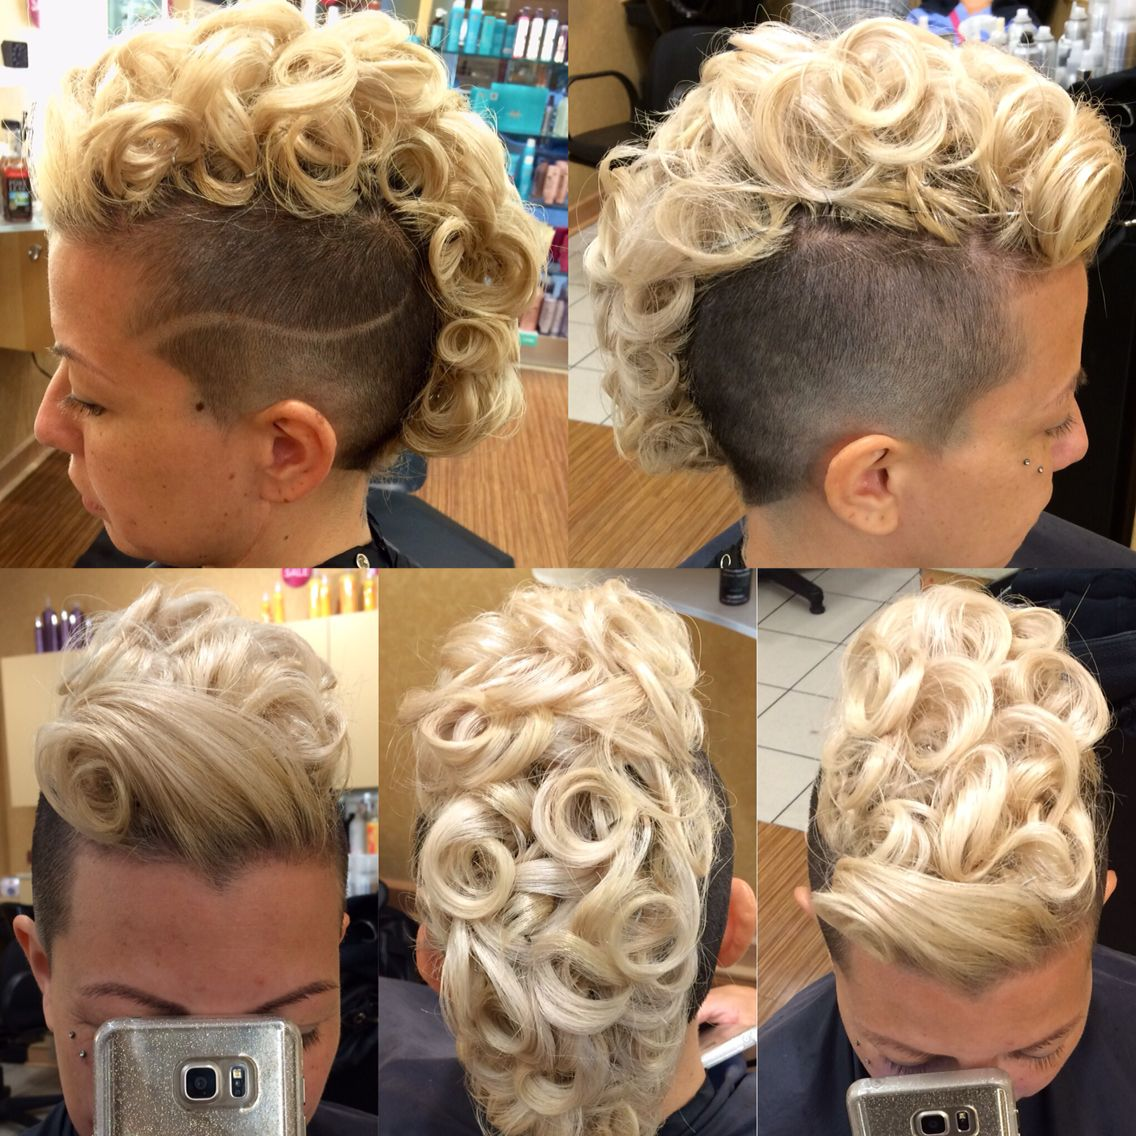 Formal style for girls with mohawks girlswithmohawks farmal updo